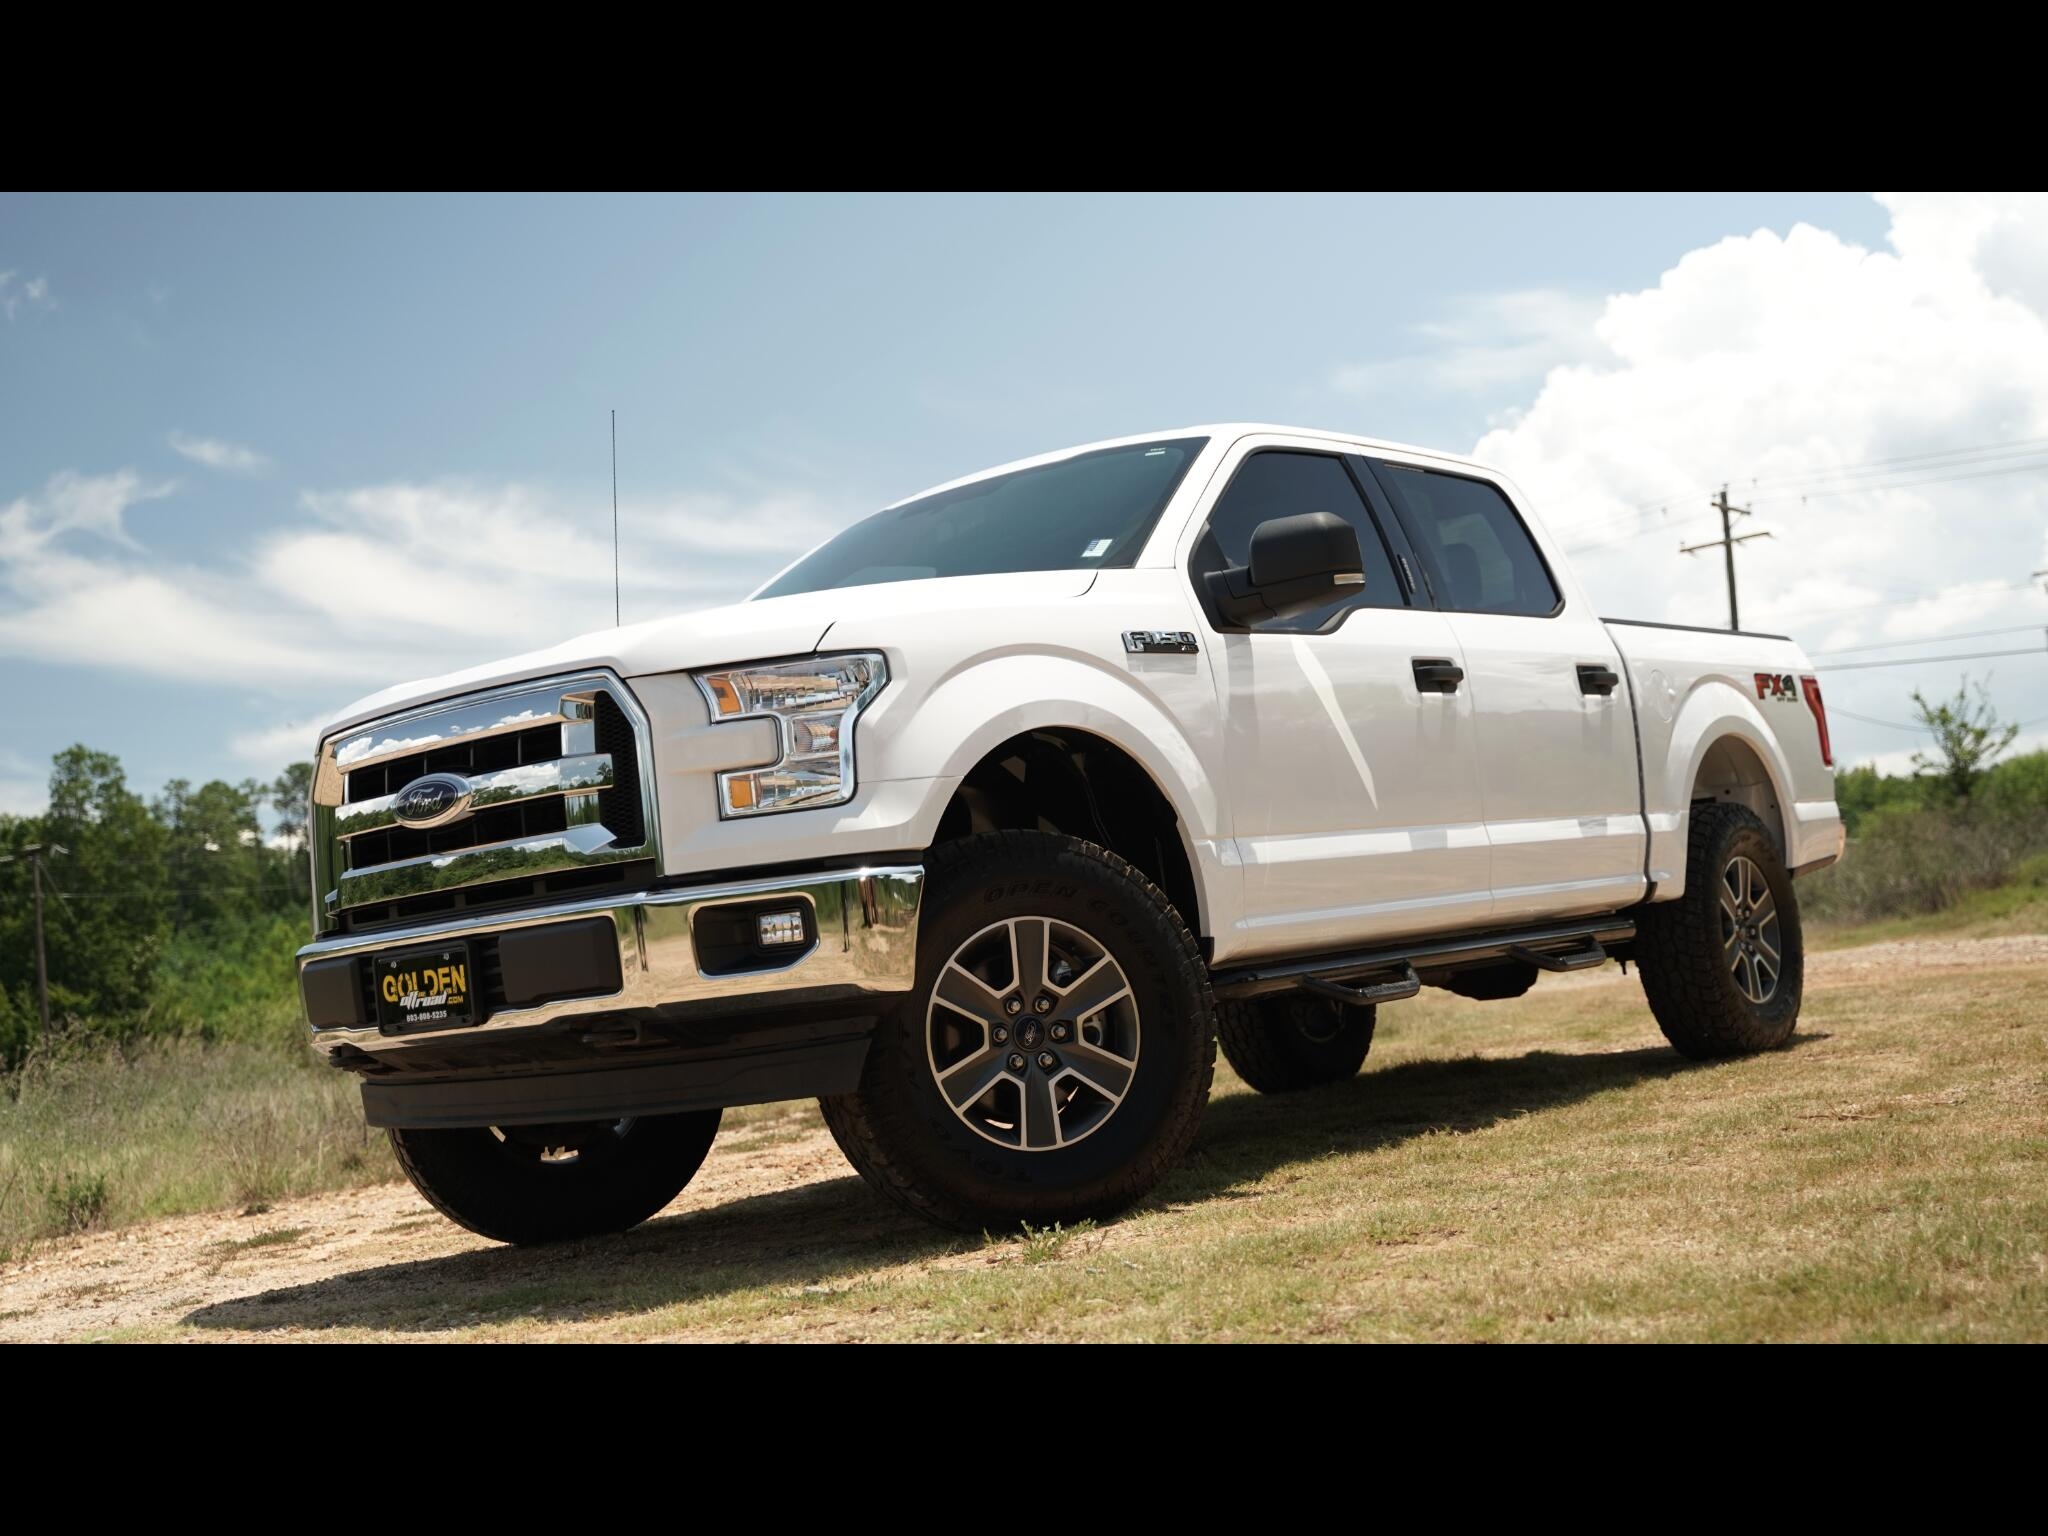 2017 Ford F-150 FX4 Super Crew 5.0 V8 Lifted Upgraded